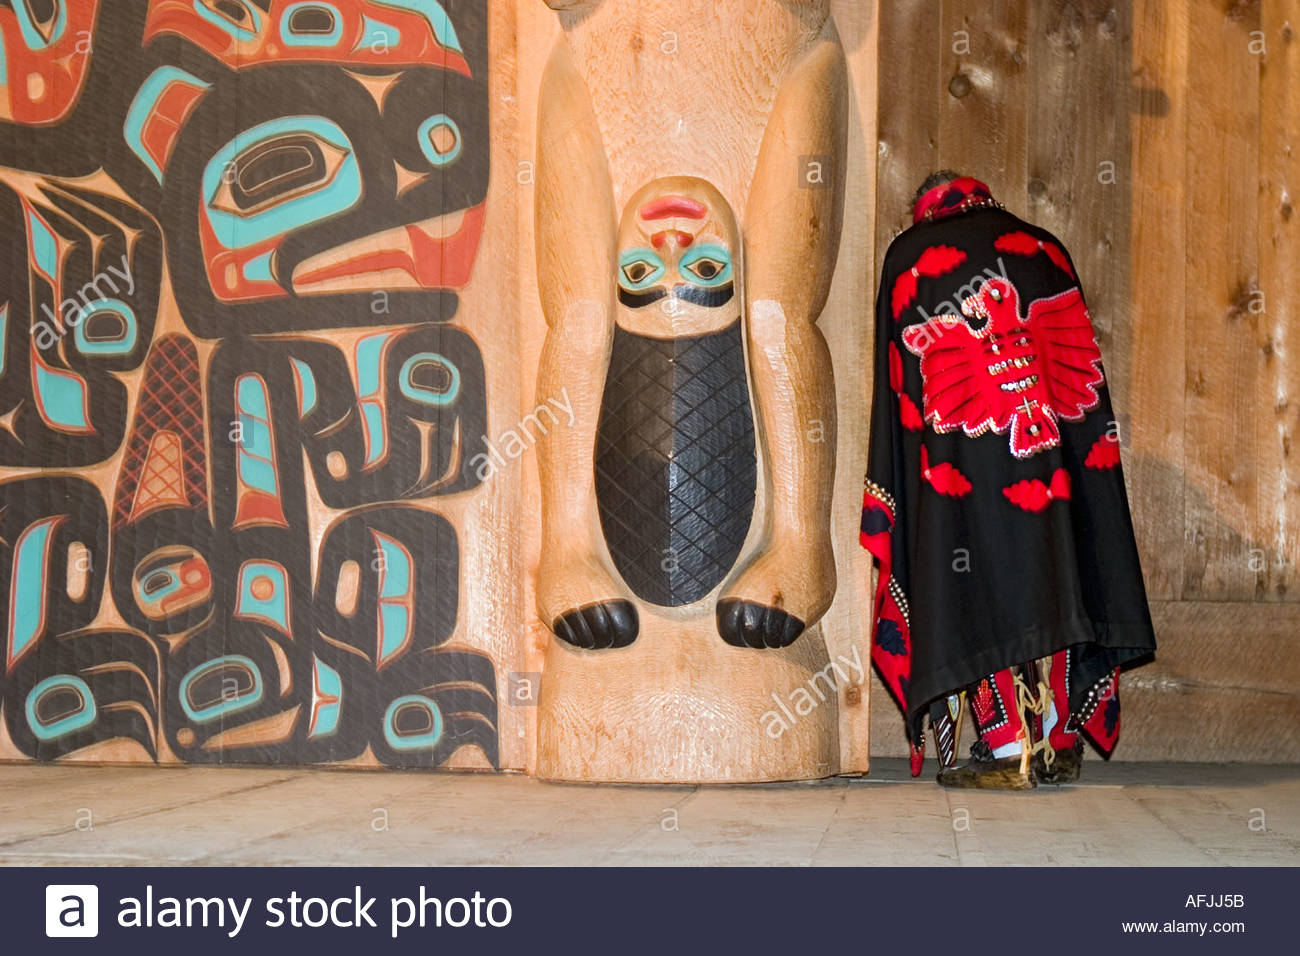 Native American Indian elder stands by totem pole in longhouse ... on indian pueblo, indian tomahawk, indian village, indian roundhouse, indian hogan, indian sweat bath, indian house, indian weapons, indian palisades, indian teepee, indian log cabin, indian igloo, indian diorama, indian baskets, indian spears, indian arrow, indian wigwam, indian buckskin, indian tipi, indian clay pots,